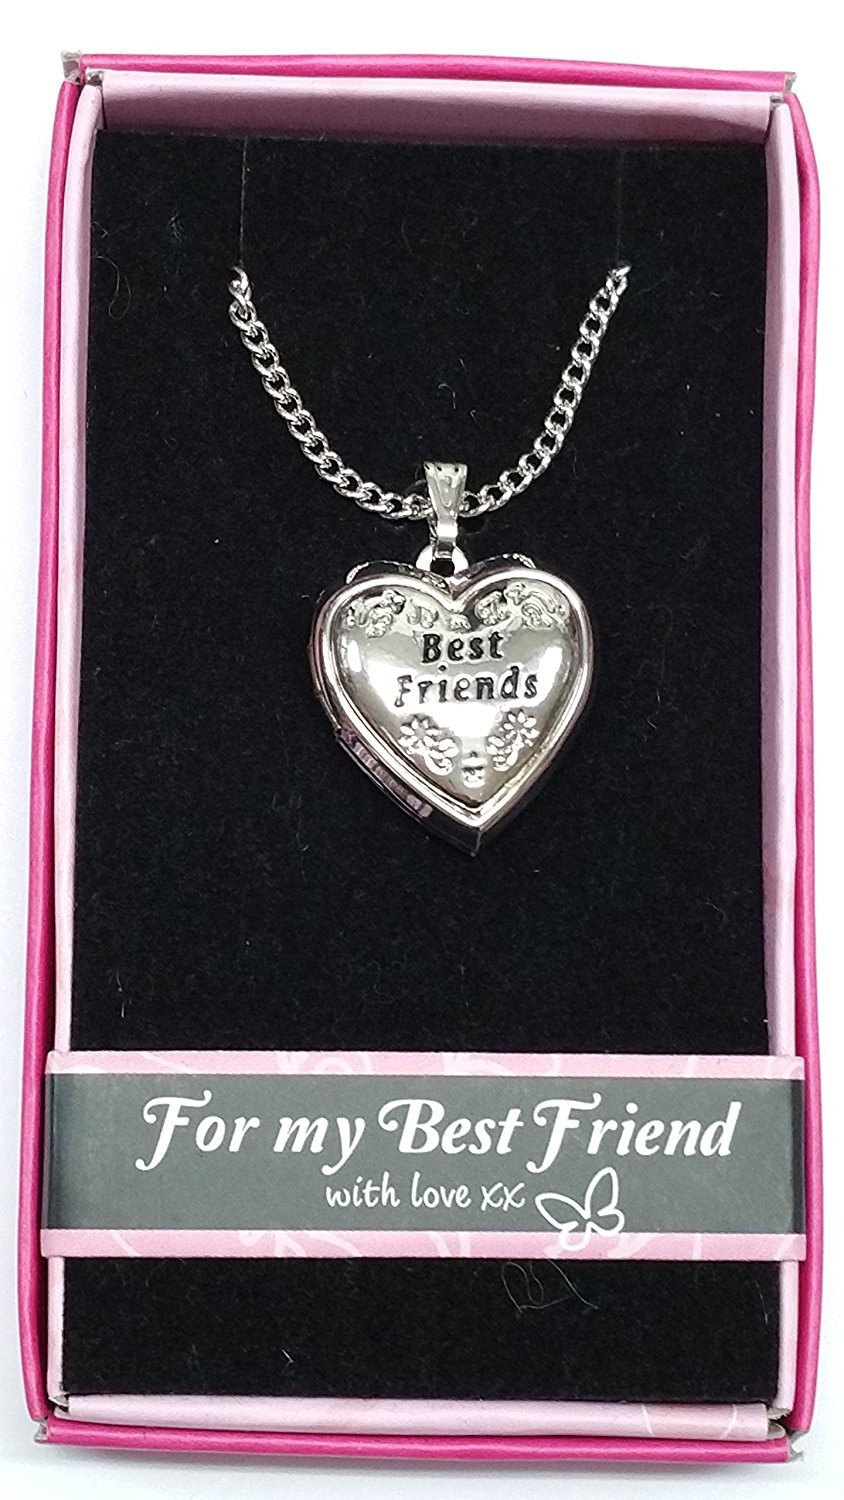 best split heart jewelry necklace forever bling lockets pbx sterling az set friends uec friend